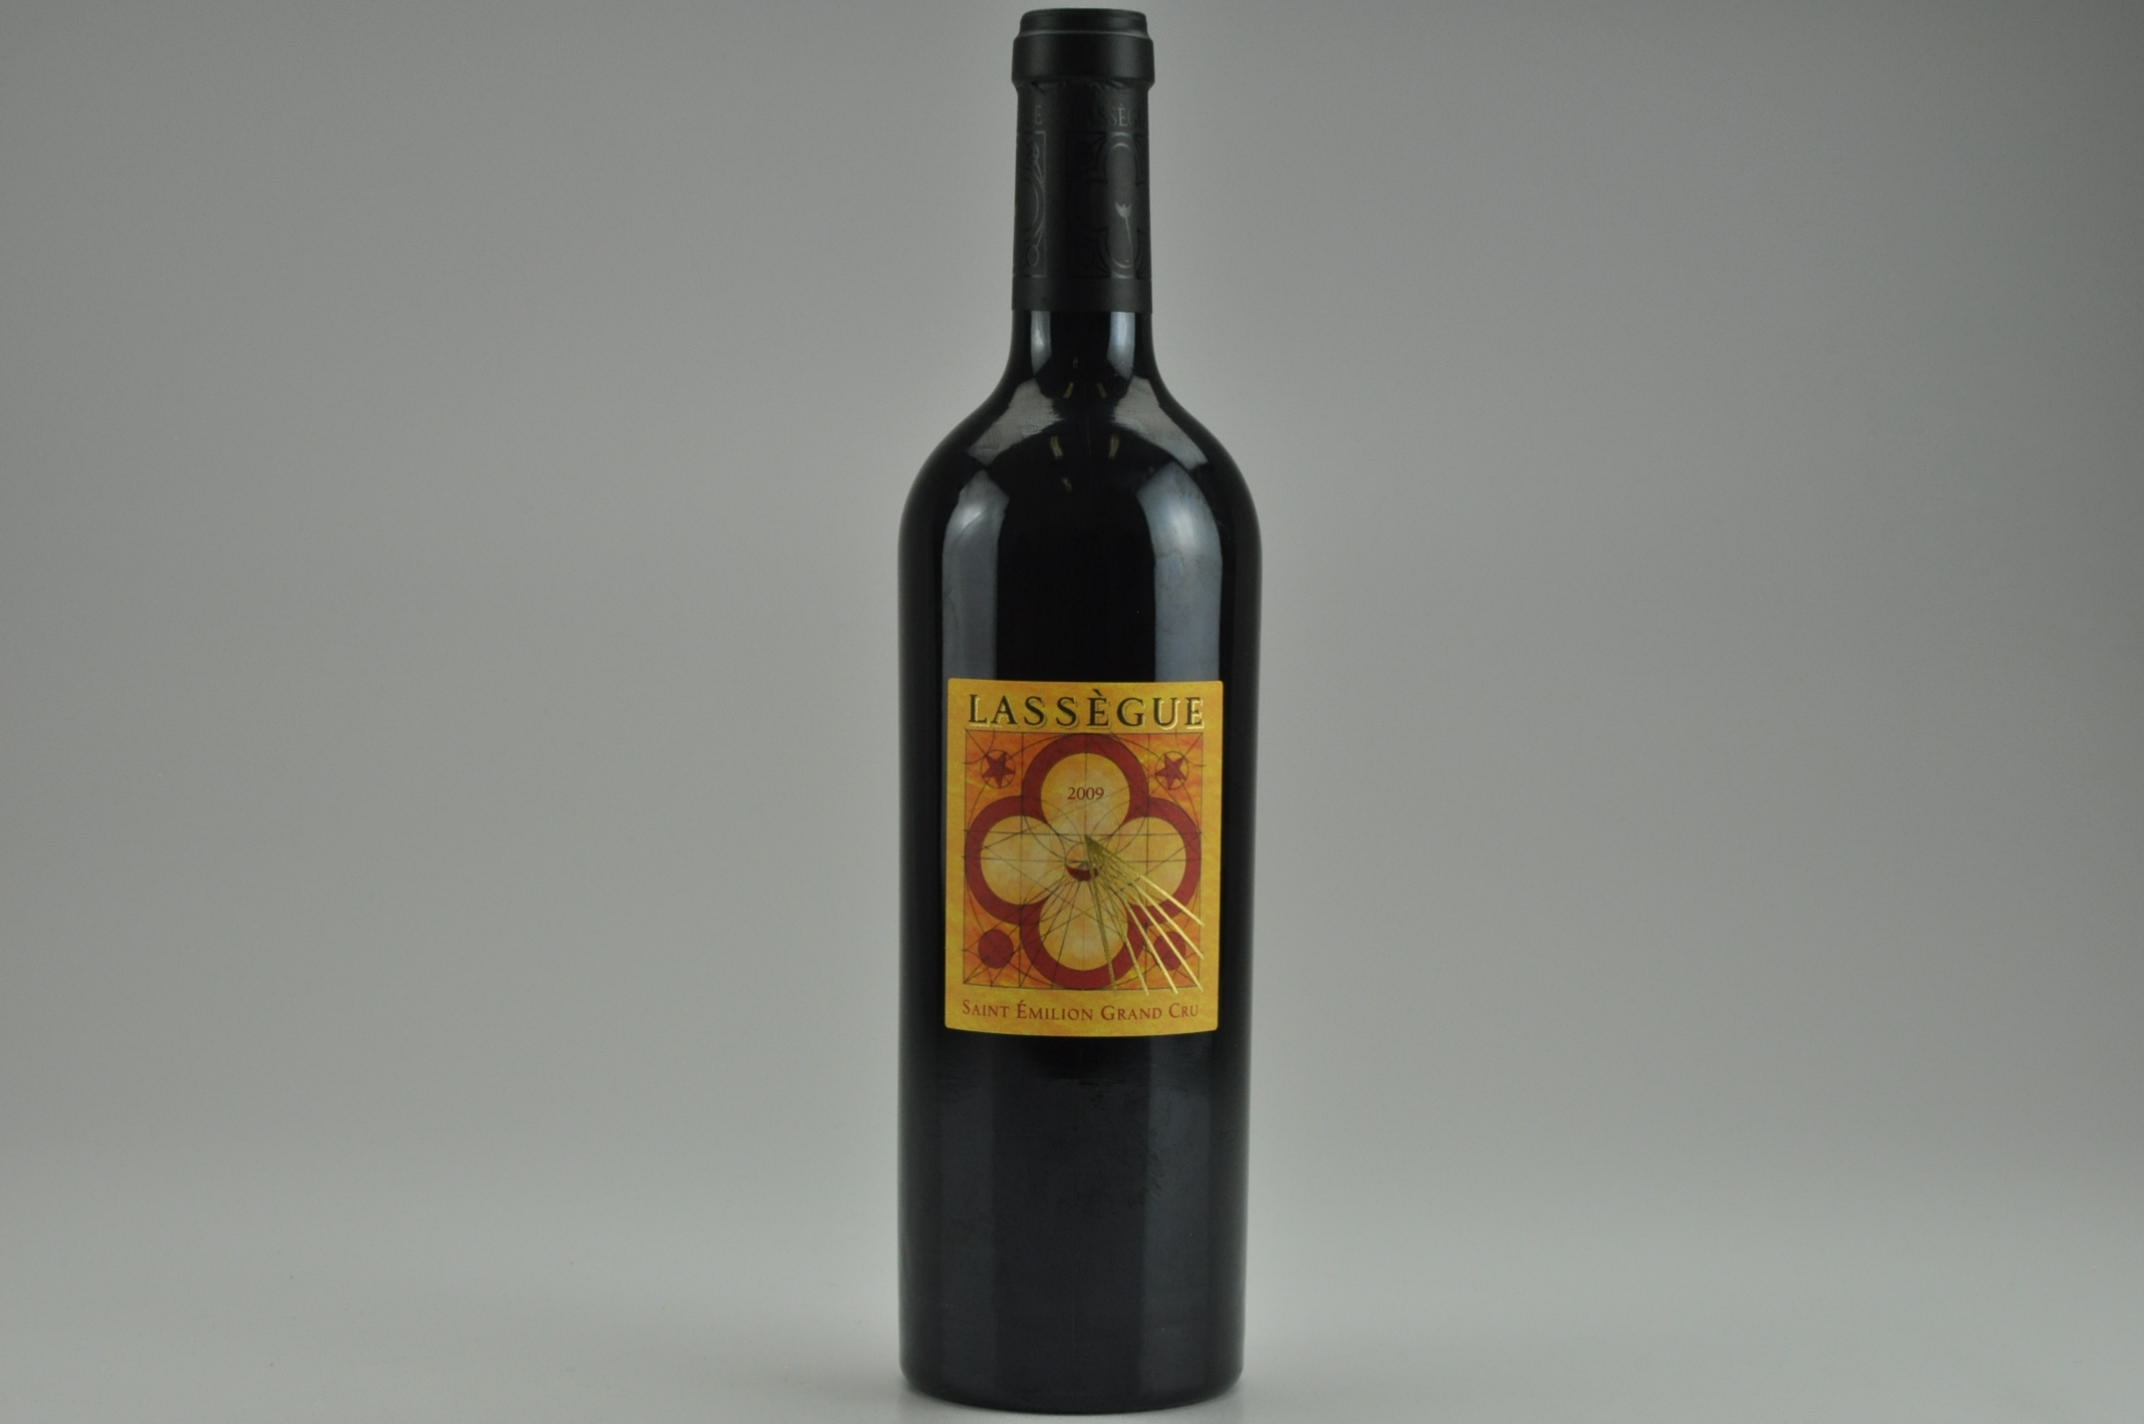 2009 Chateau Lassegue Bordeaux, Saint-Emilion RP--90